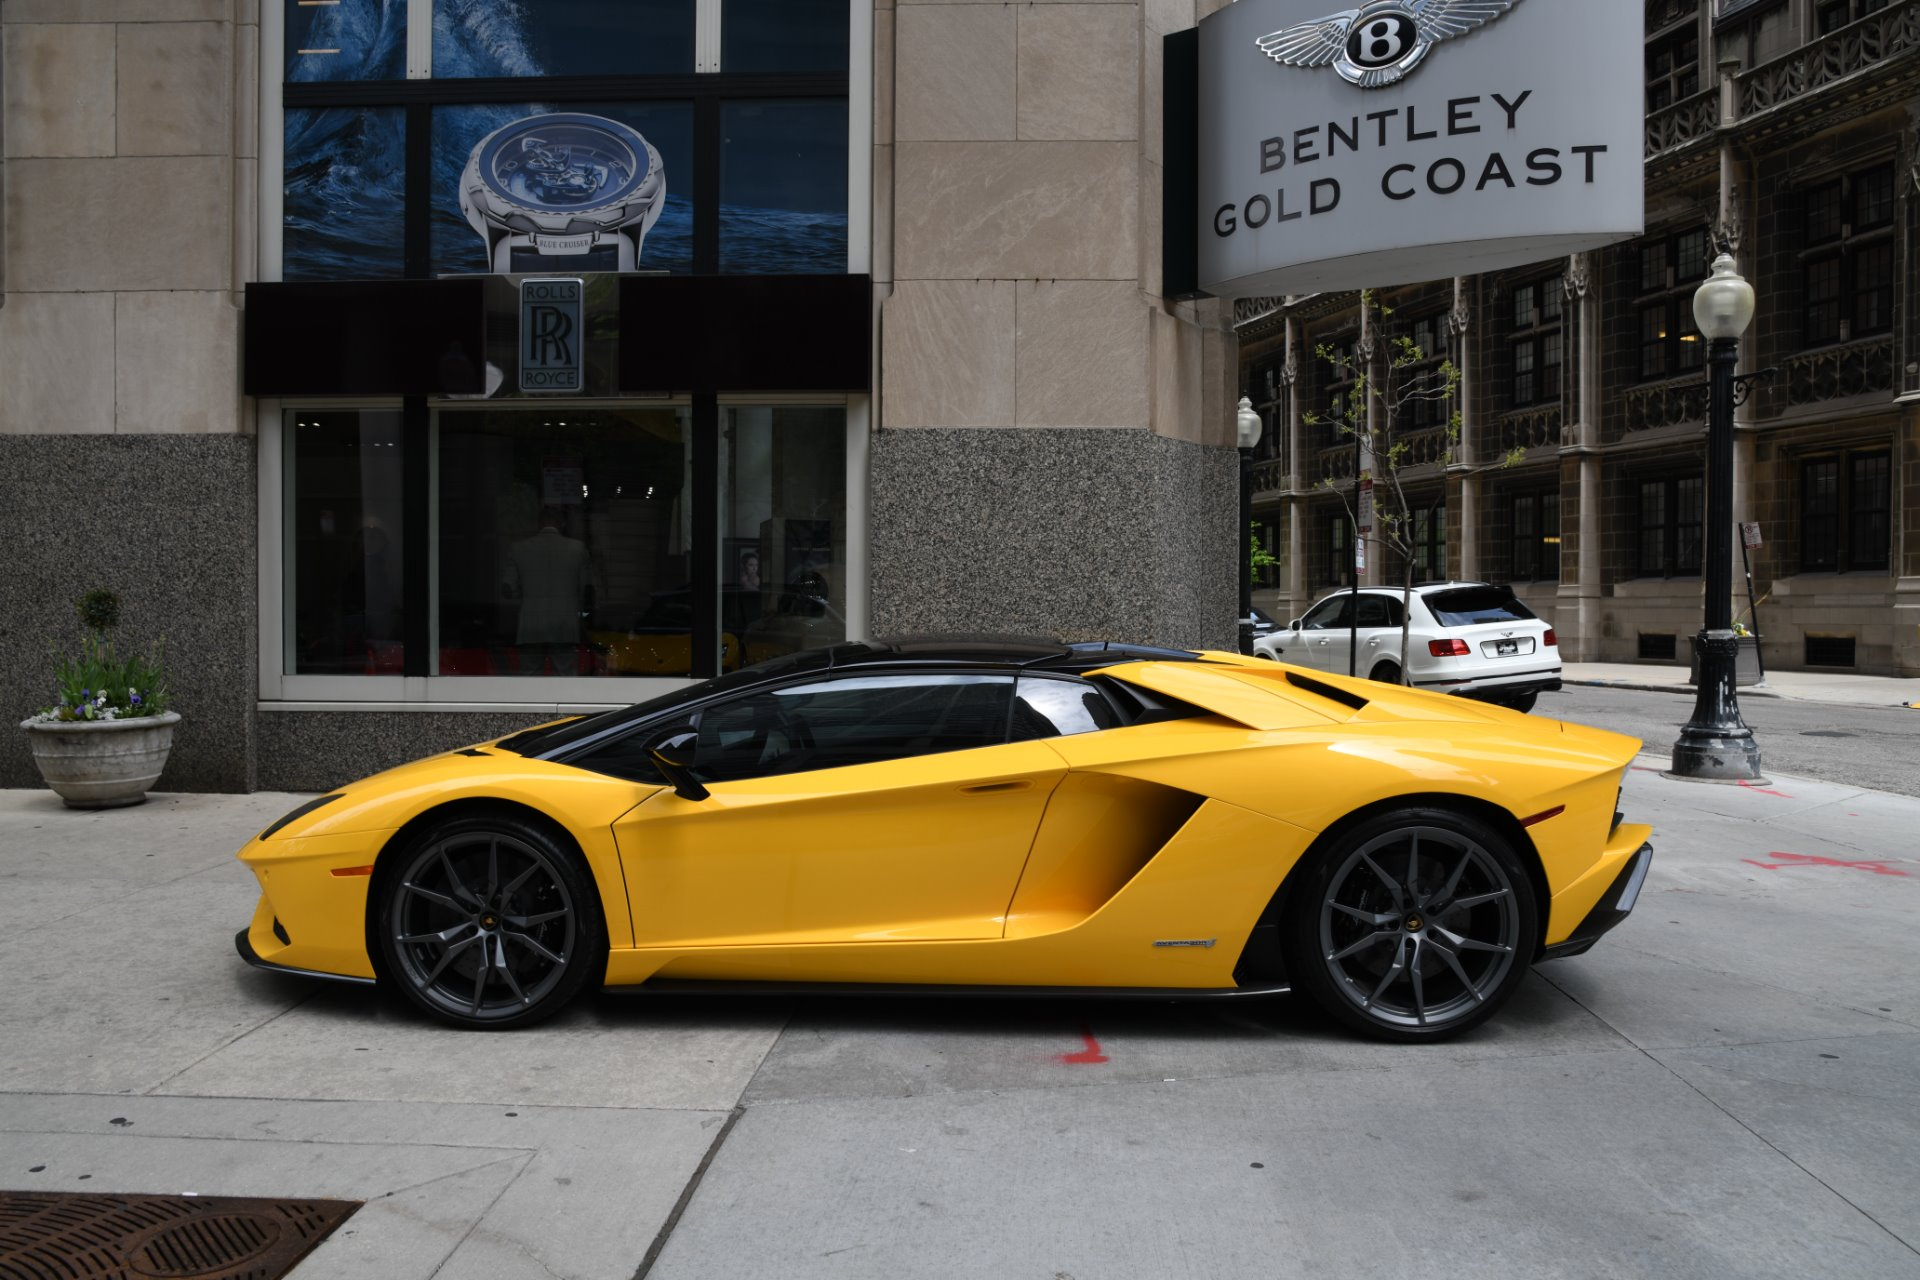 Used 2018 Lamborghini Aventador S Roadster LP 740-4 S | Chicago, IL